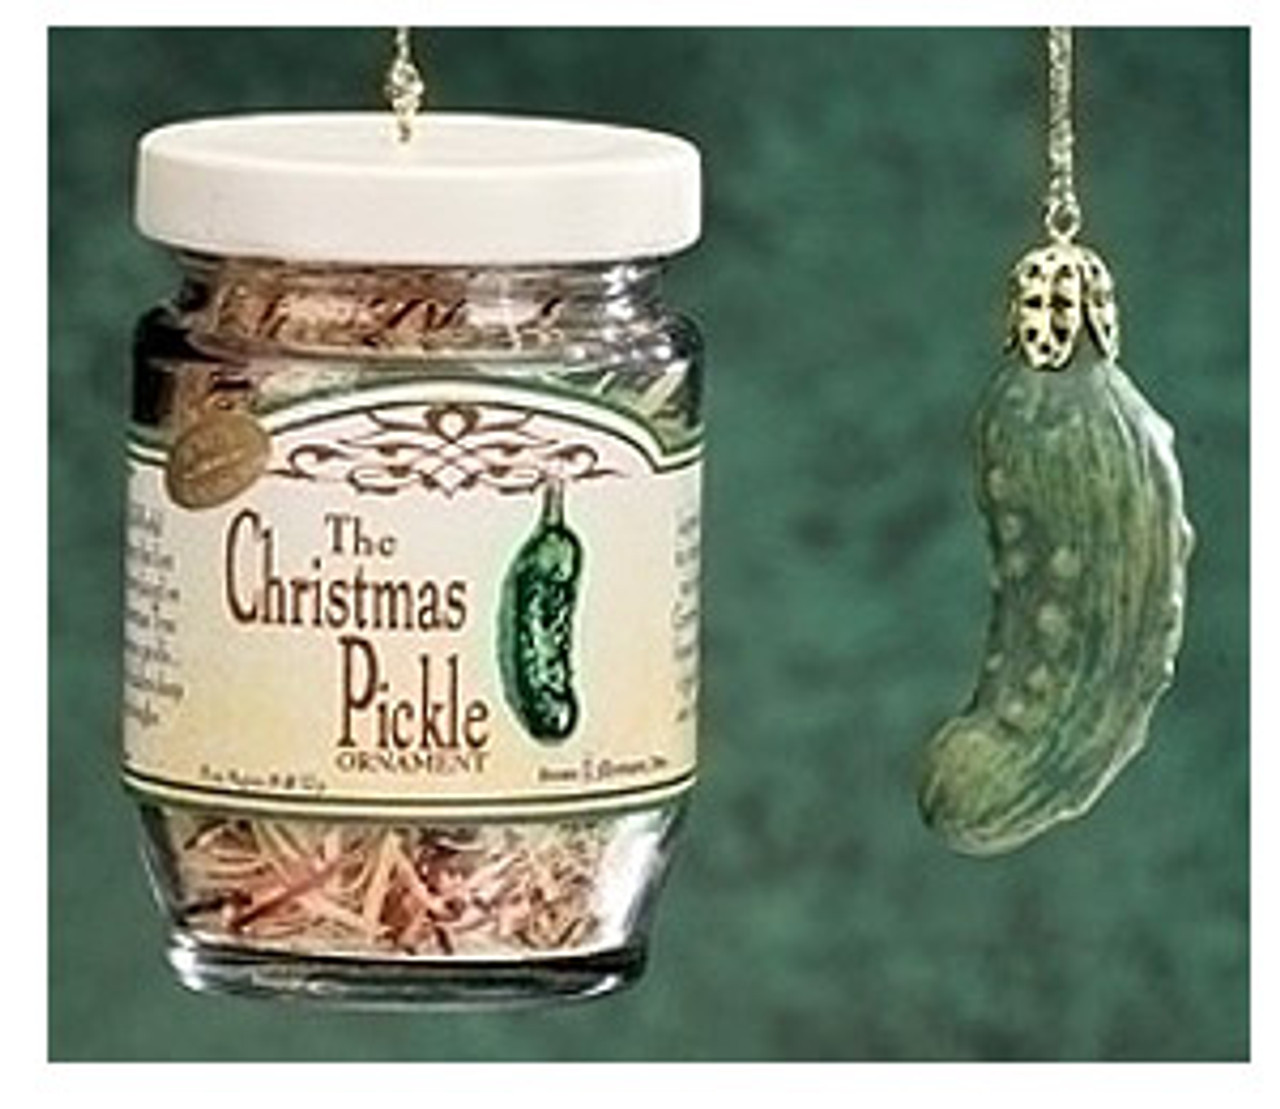 the famous german christmas pickle in glass jar holiday ornament set 7037953